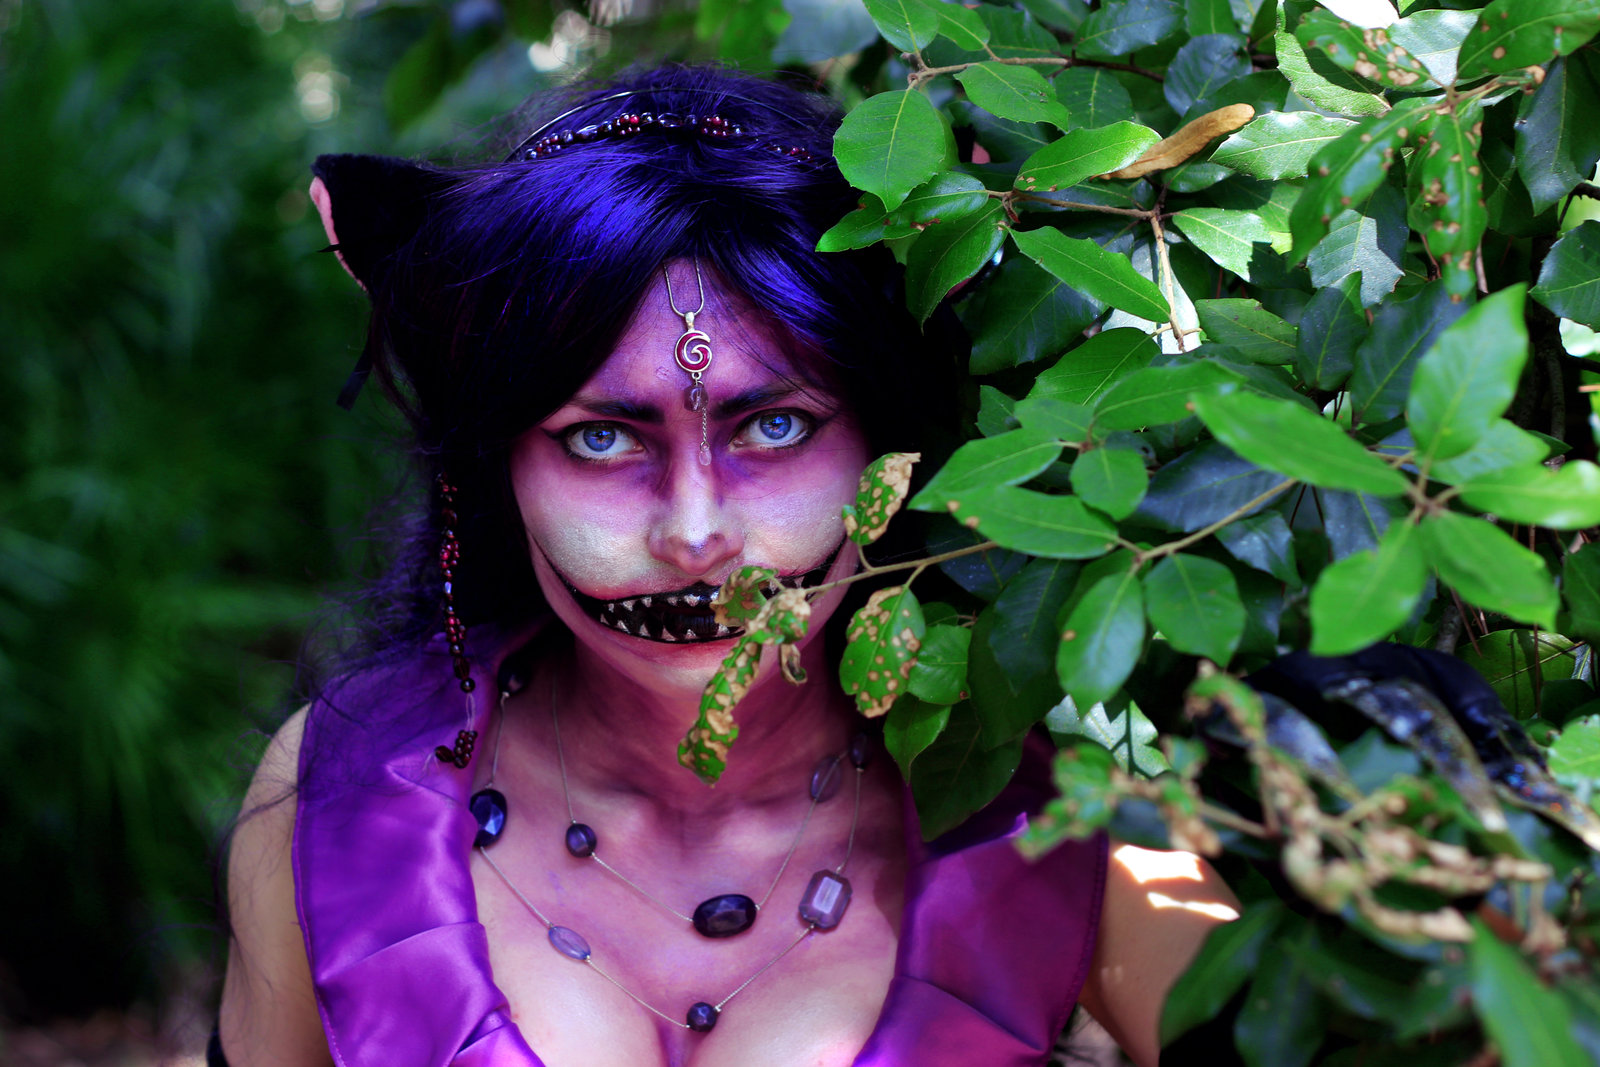 cheshire female cat disney alice in wonderland makeup cosplay